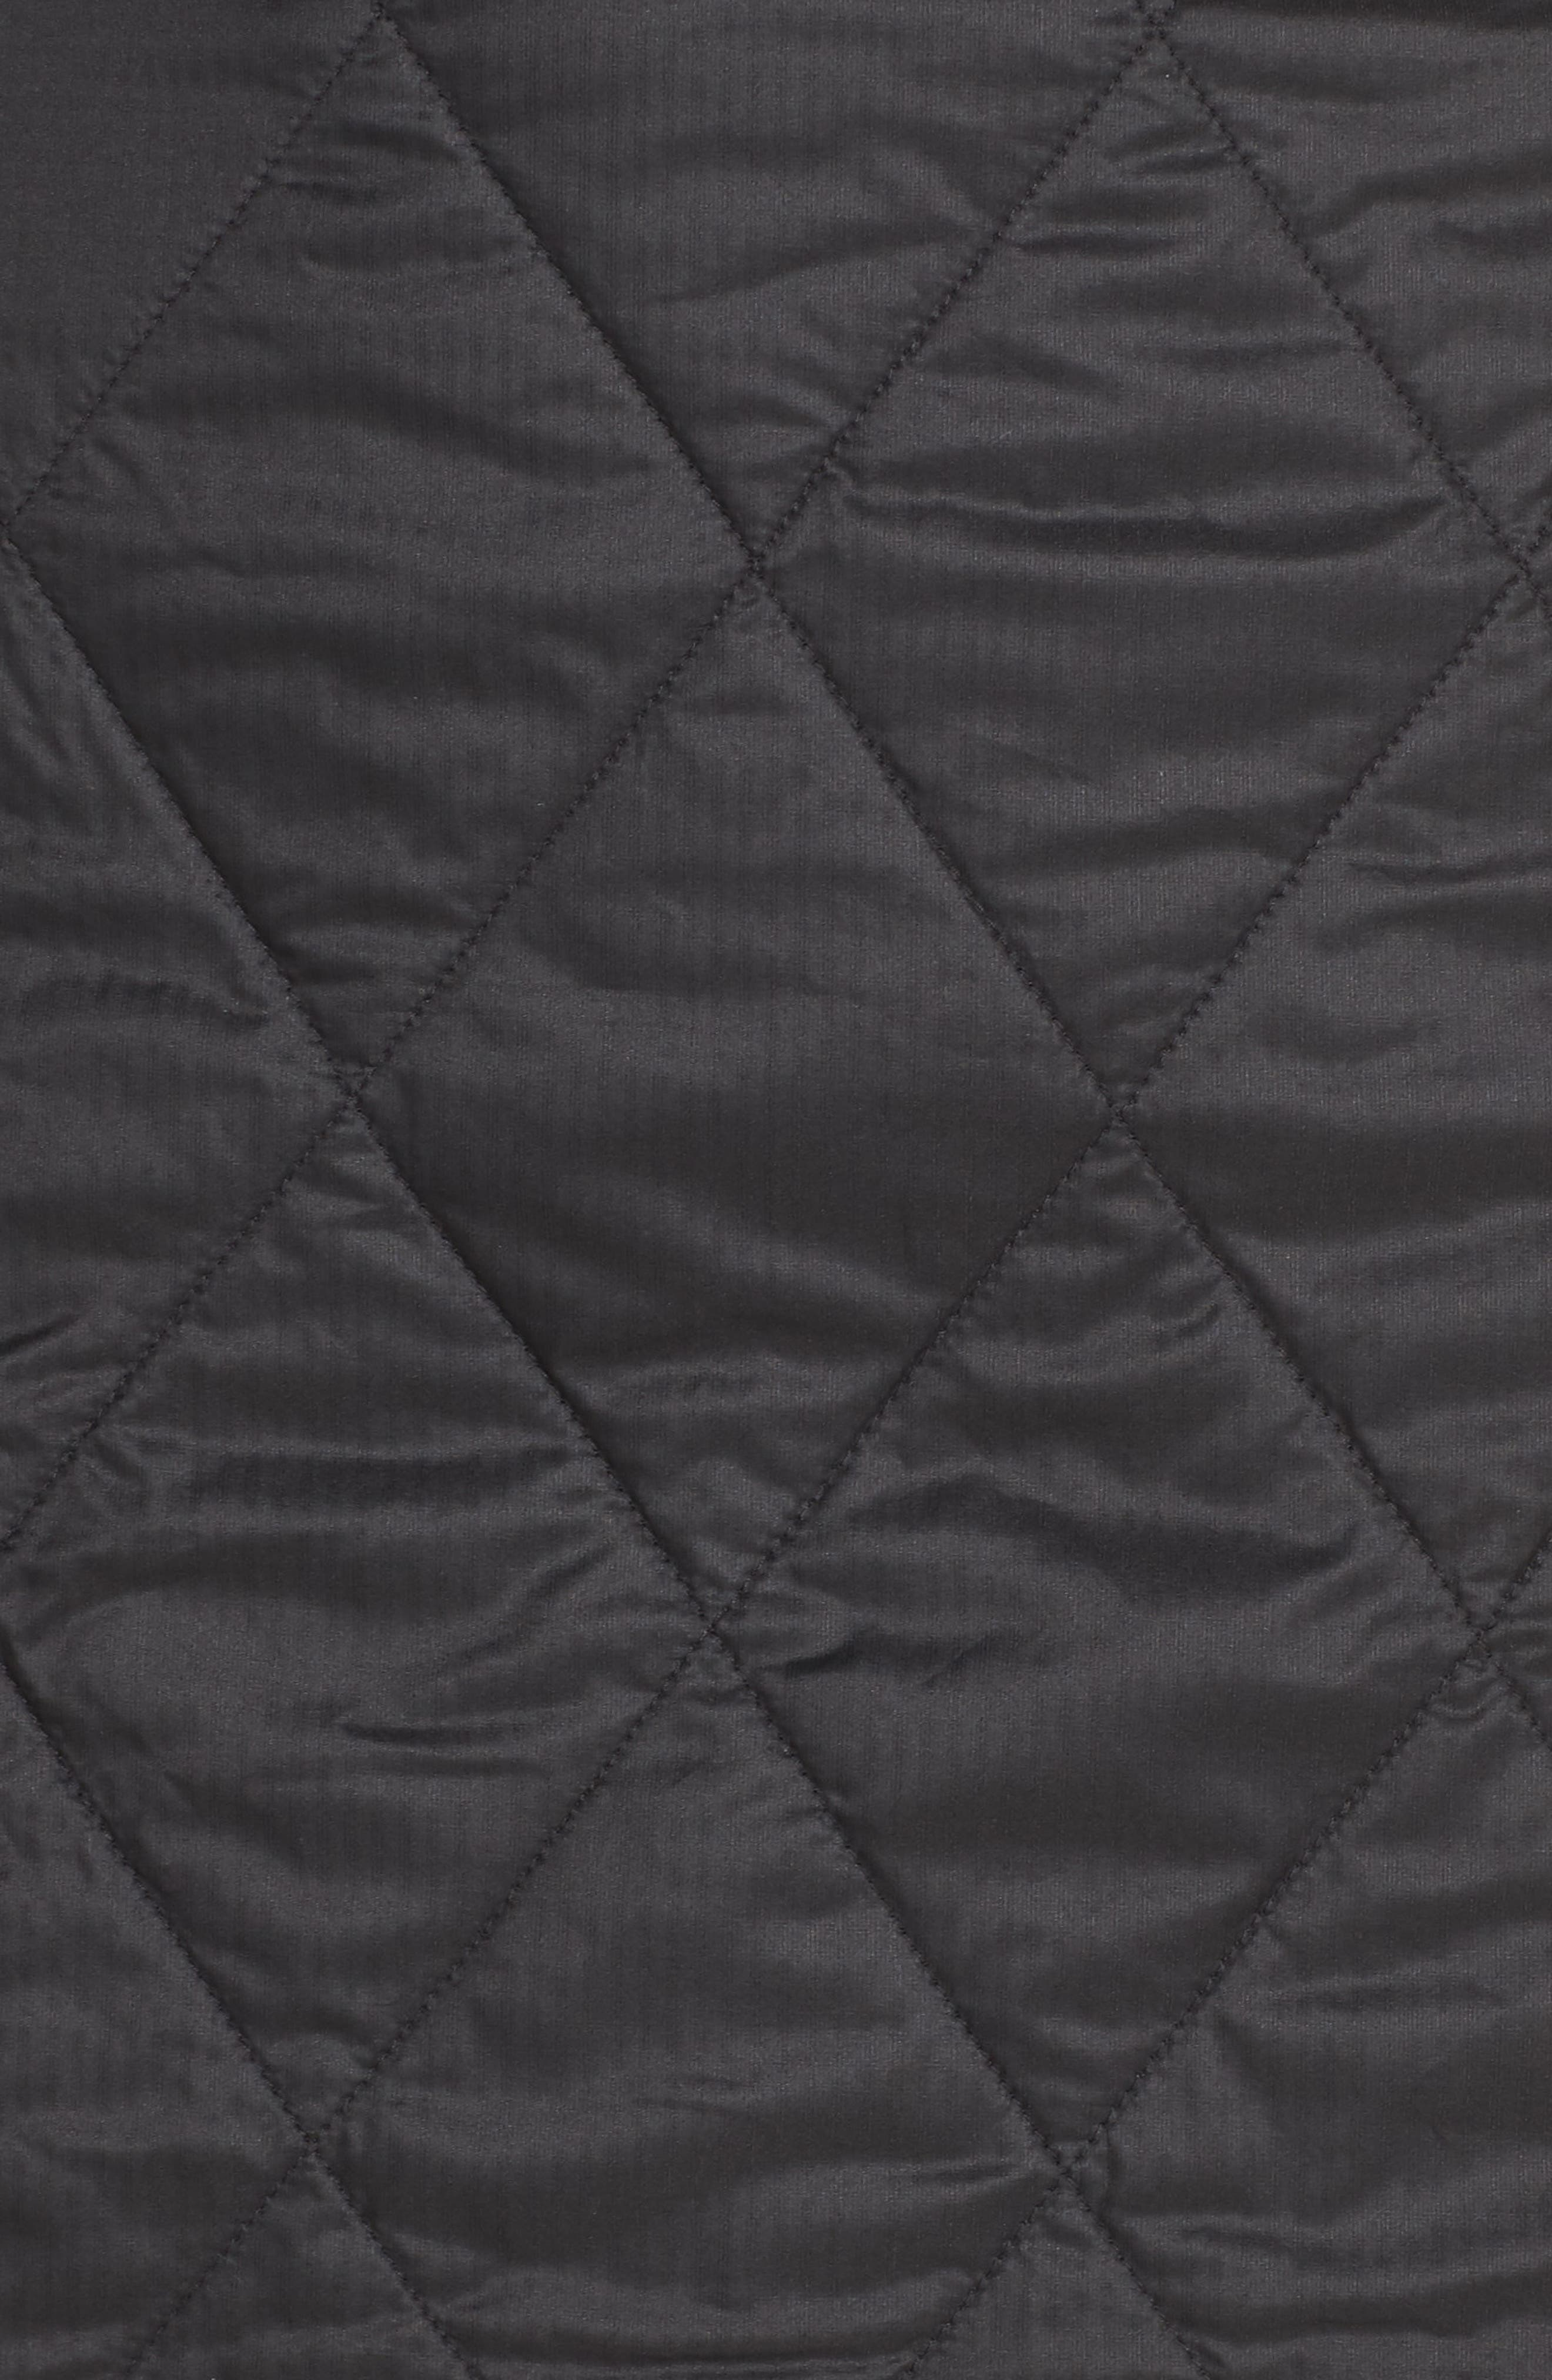 Helix Quilted Wool Blend Skirt,                             Alternate thumbnail 4, color,                             BLACK